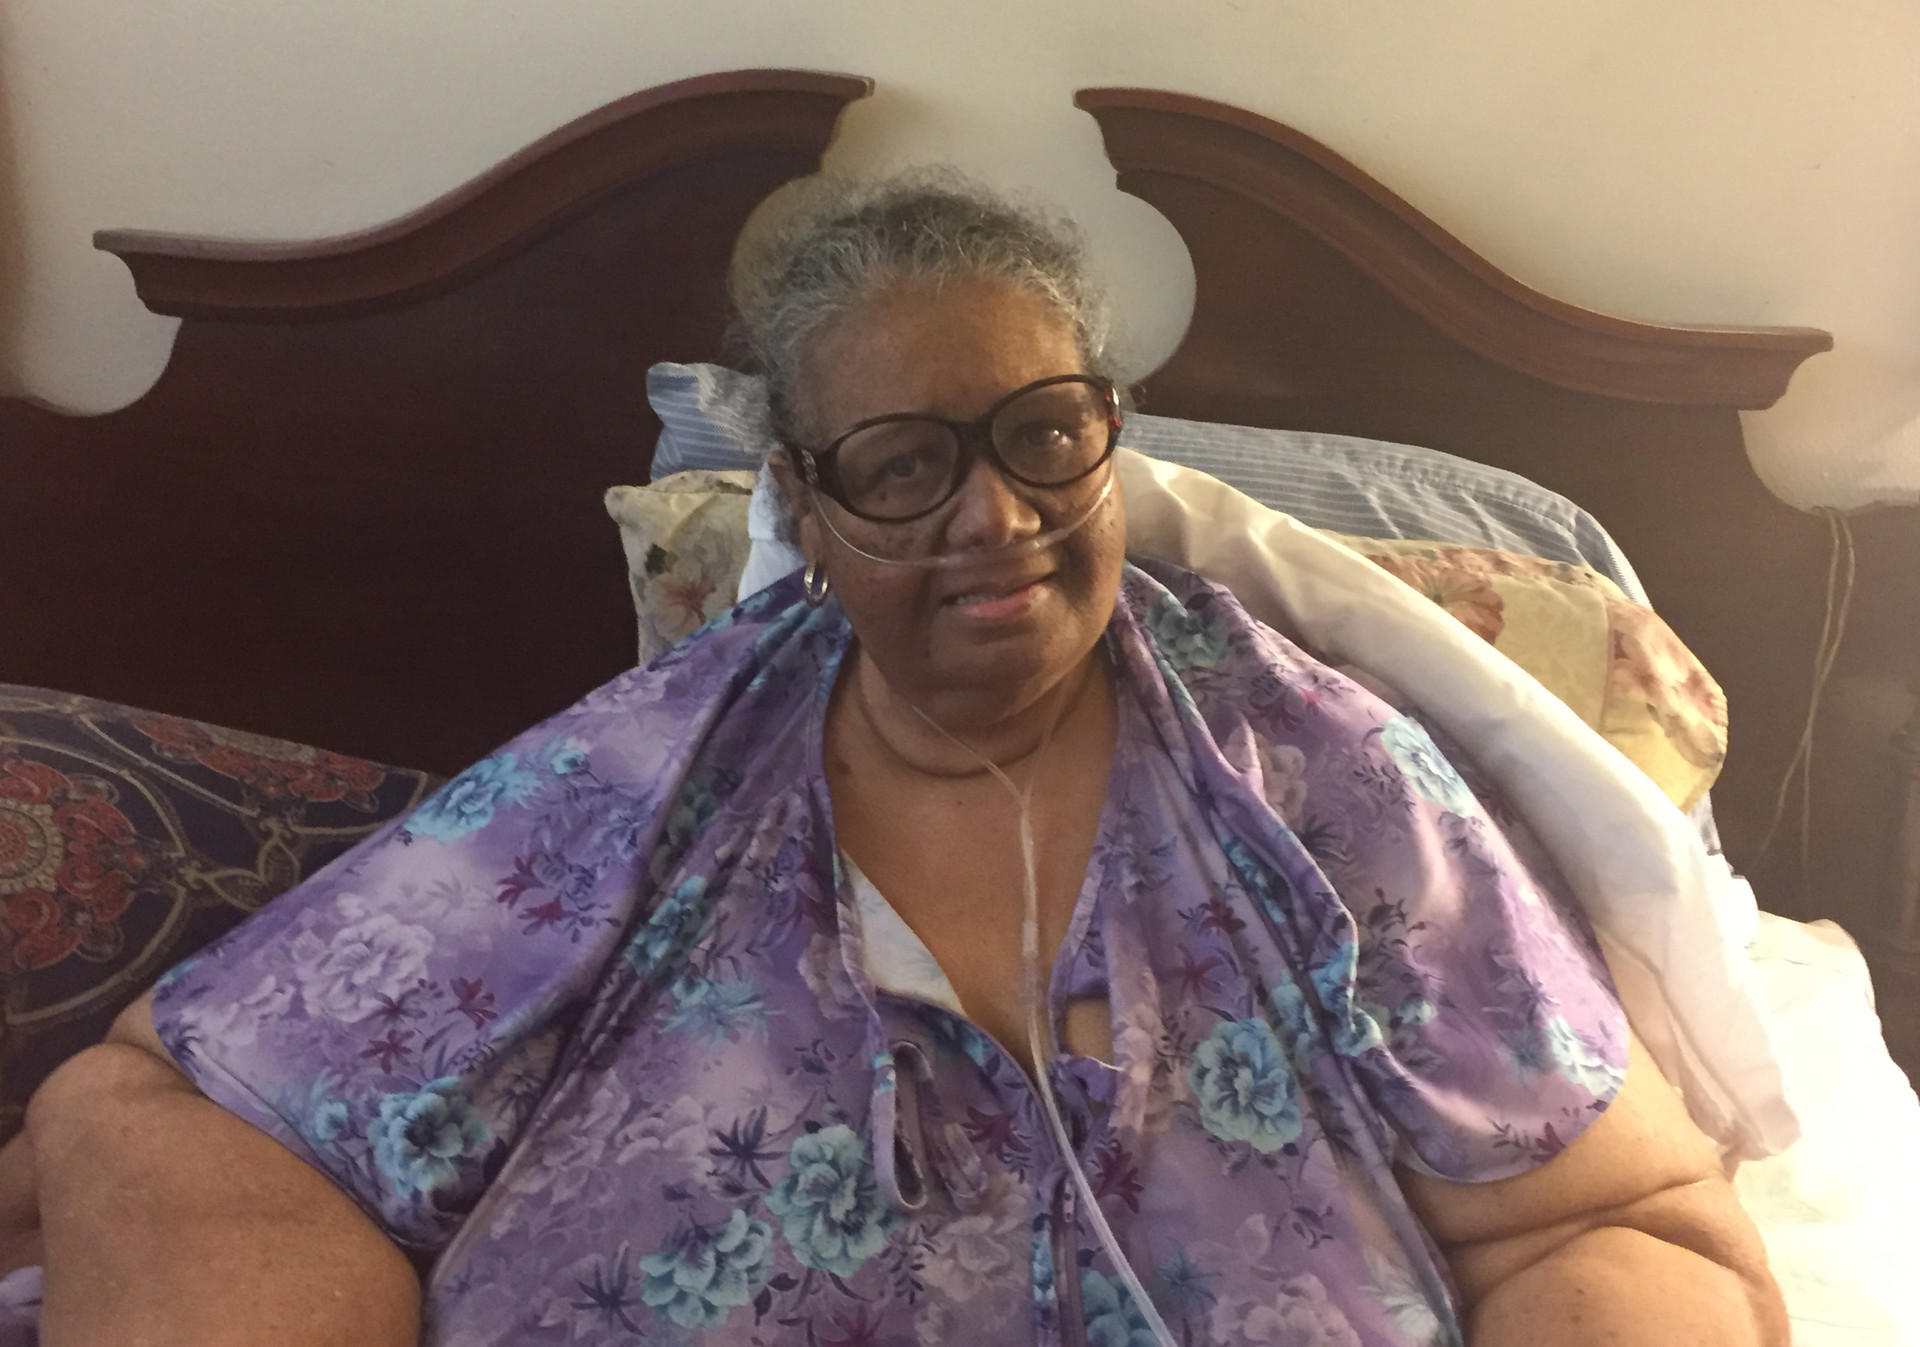 Connie Fuller lives alone in North Oakland. Staff at the Alameda County Care Alliance stop in to check on her and connect her to essential resources, much like a family member would.